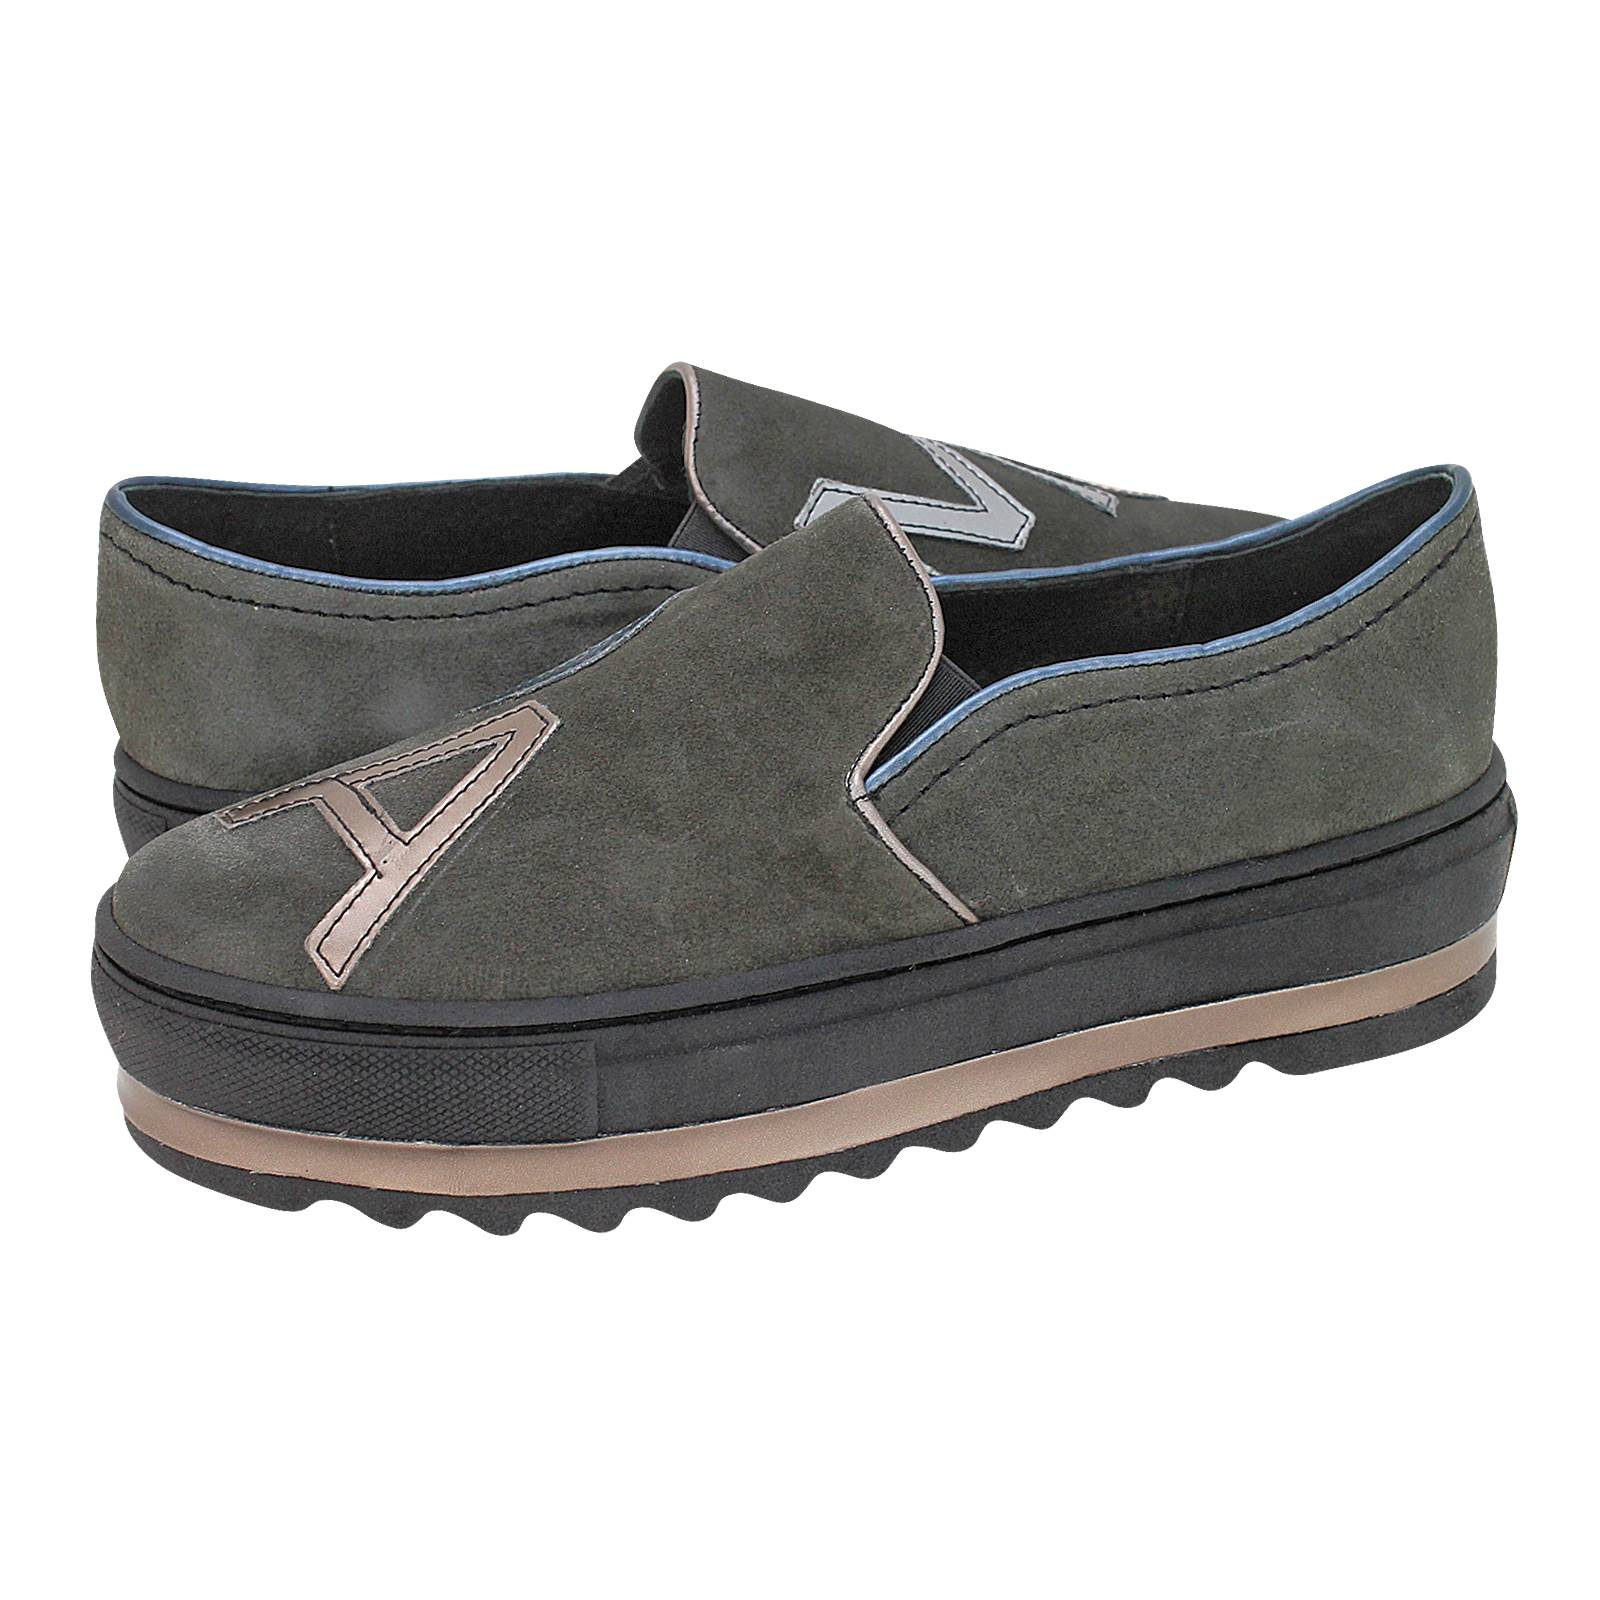 Clarbec - Esthissis Women s casual shoes made of suede and leather ... 8526868570f